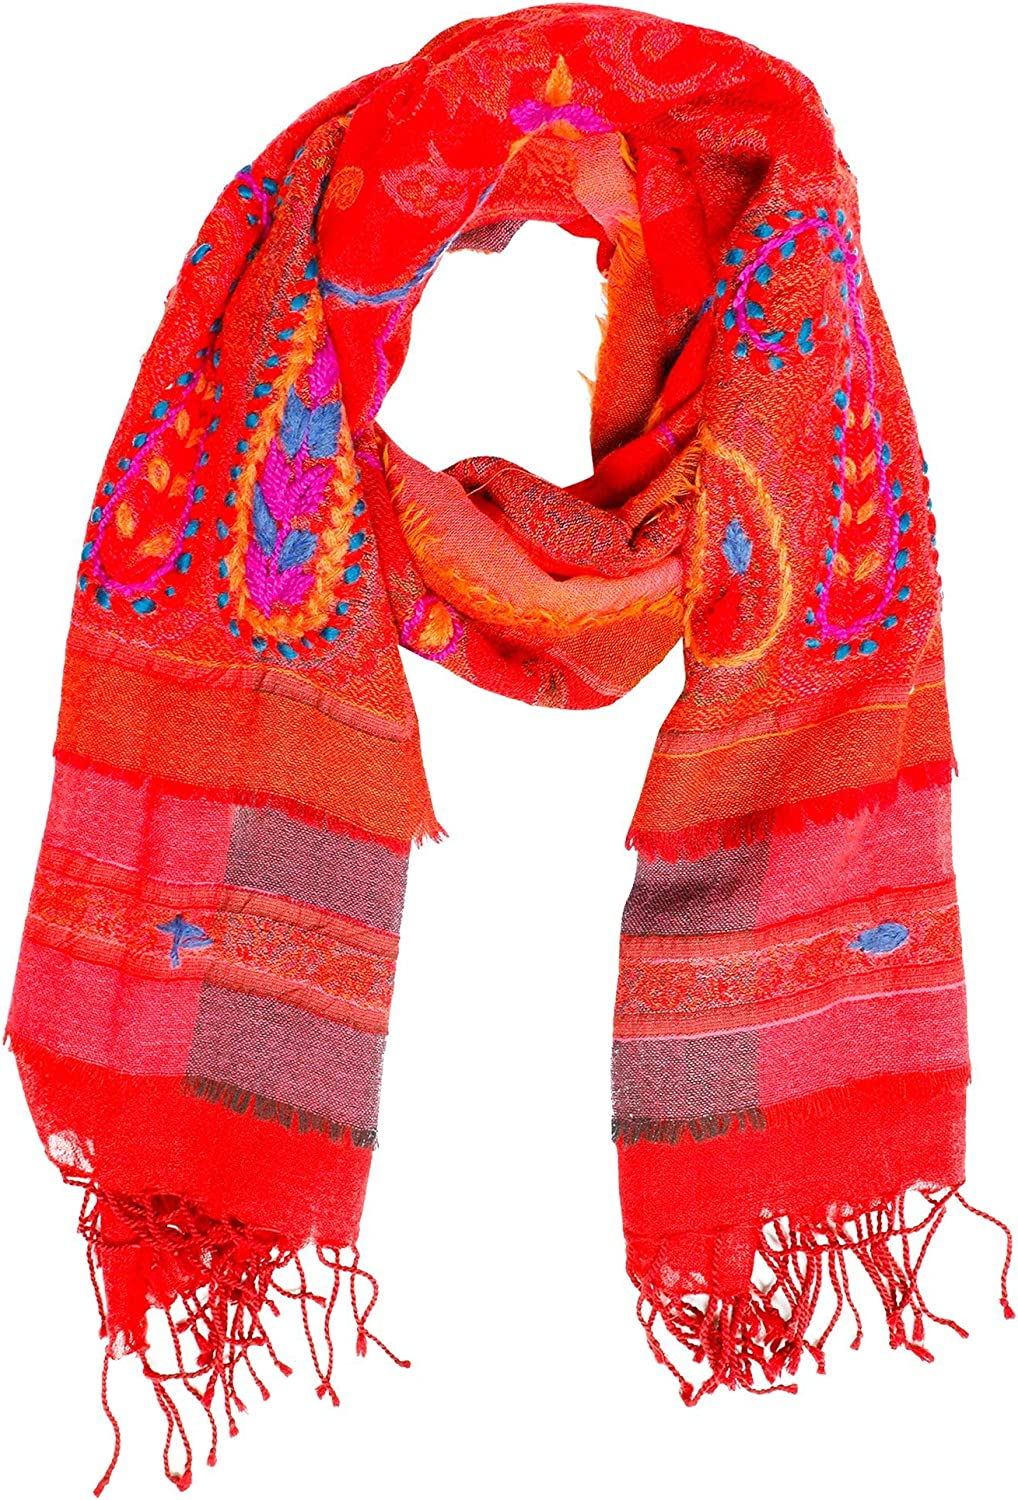 3 Layer Camel Wool Ultra Soft Scarf Gorgeous Ruby Red